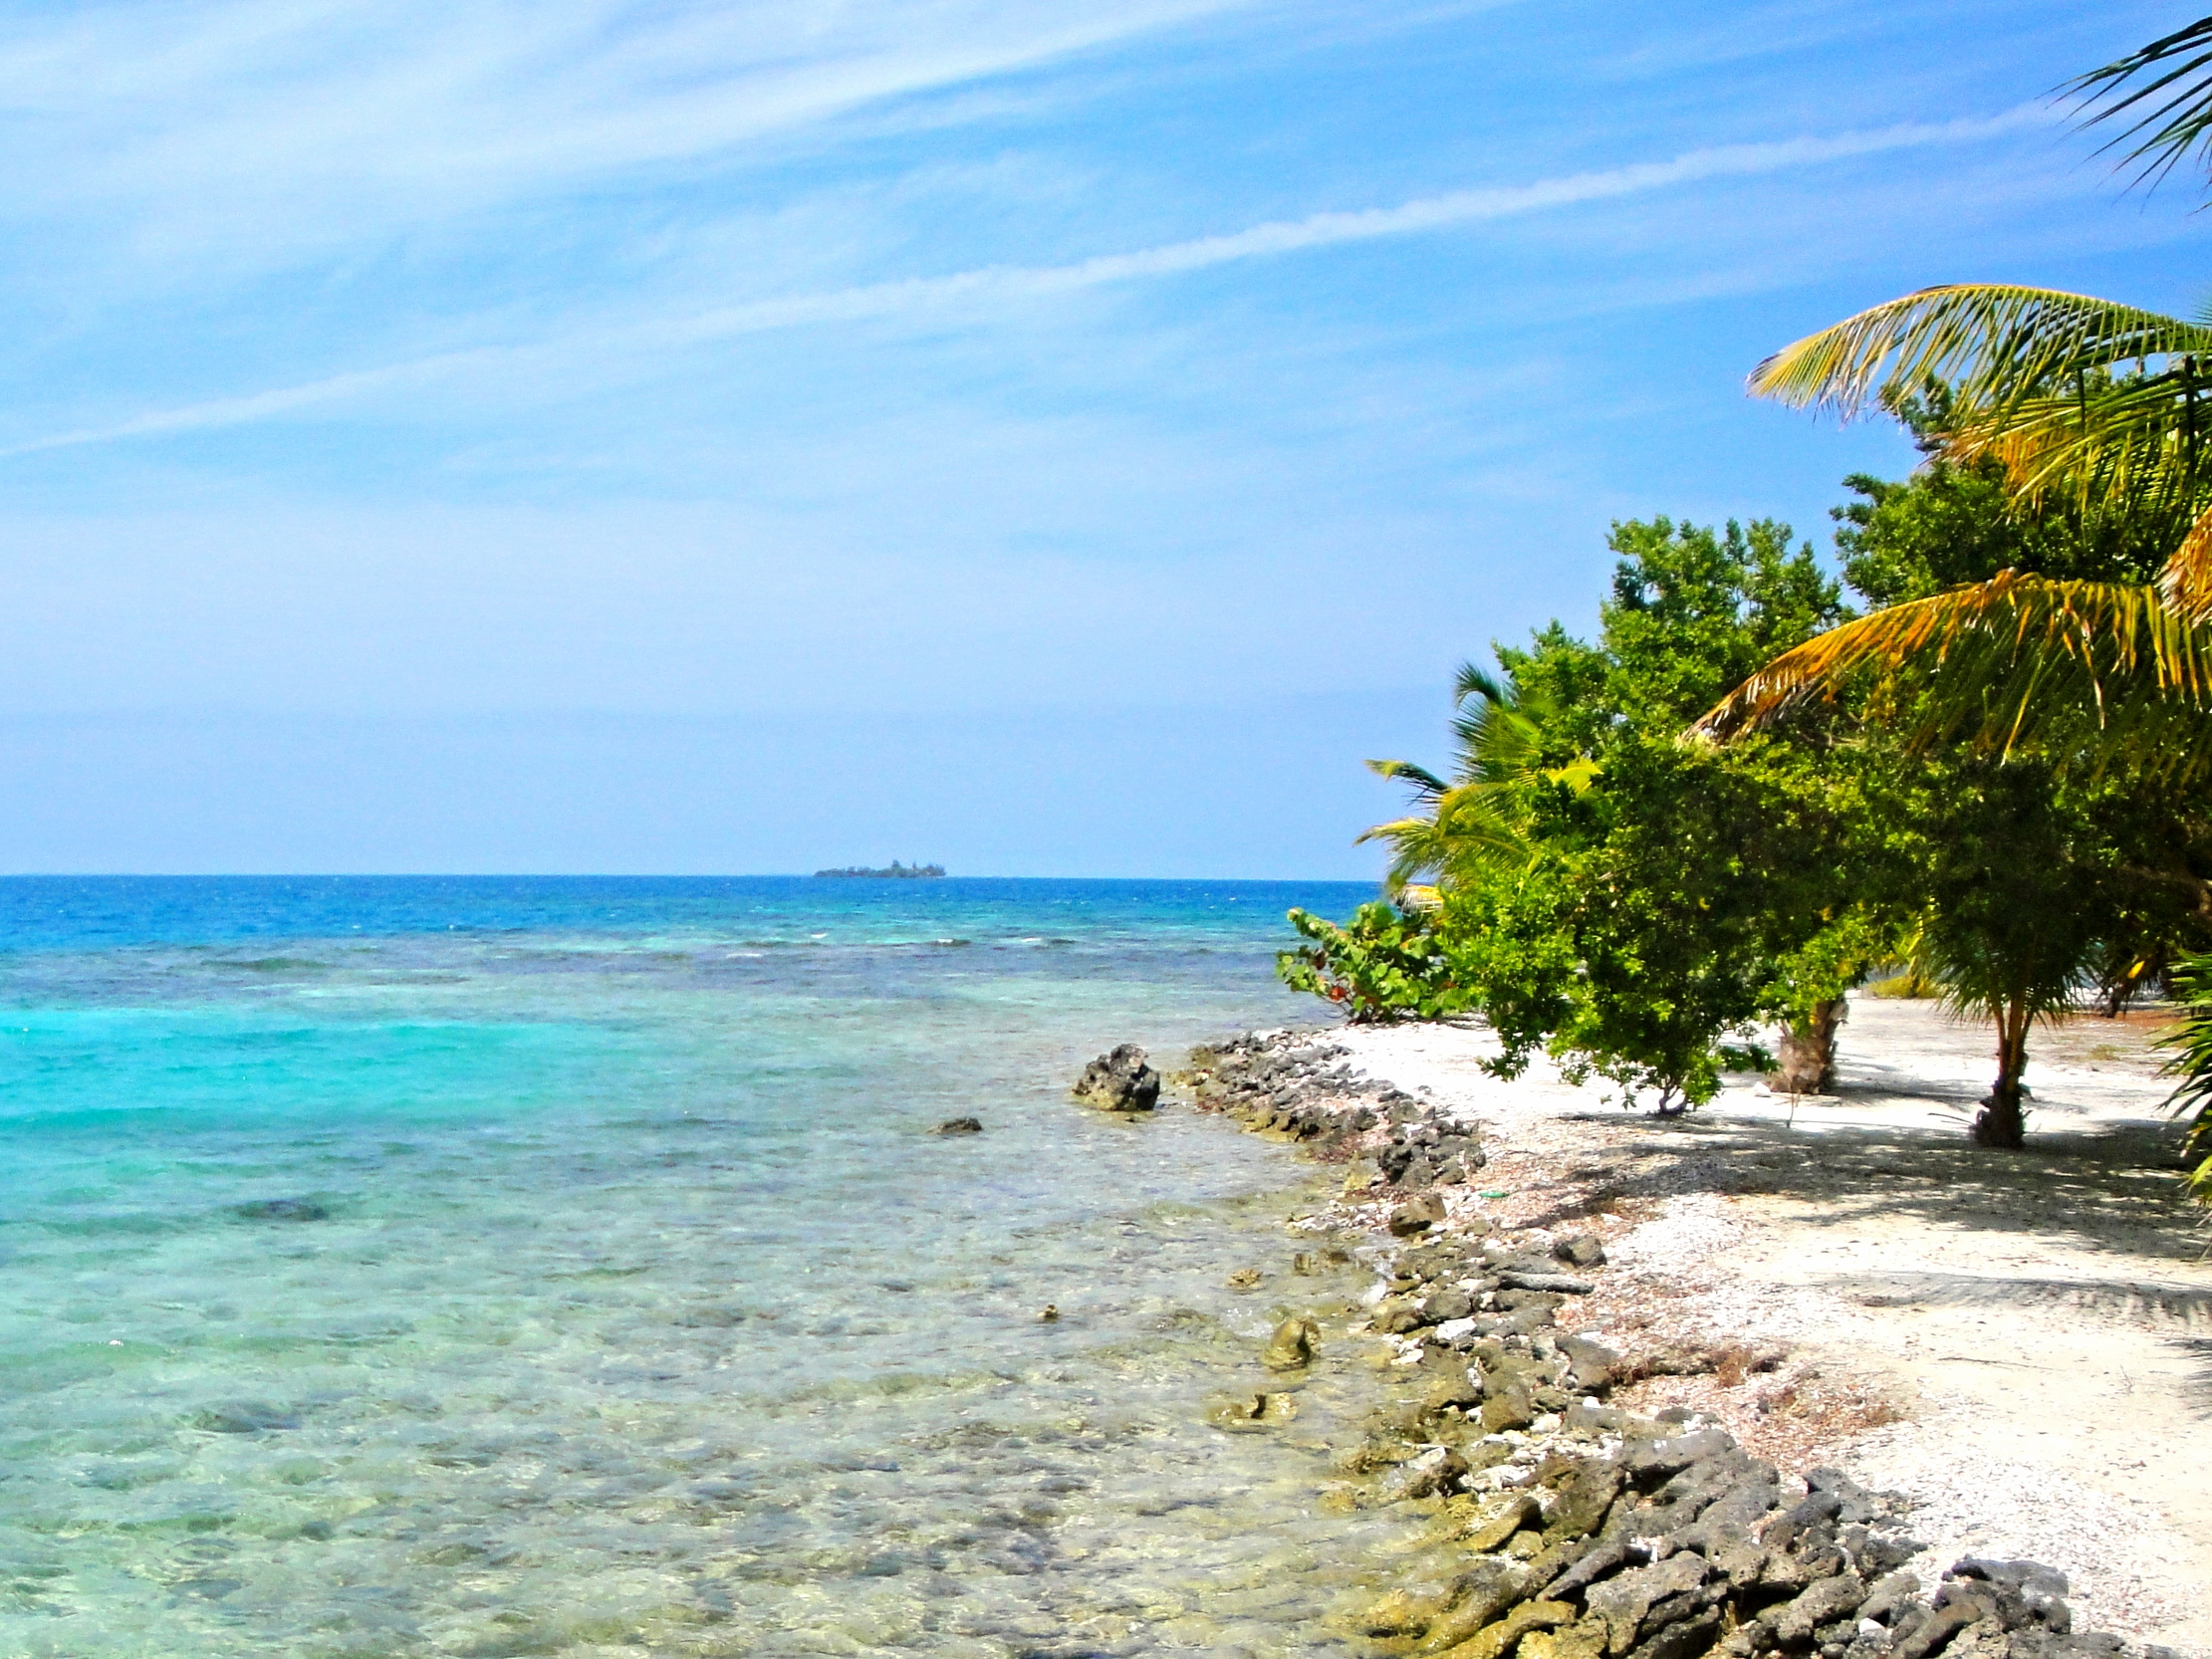 Stop at a remote Caye for a picnic while out on a snorkel or fishing trip